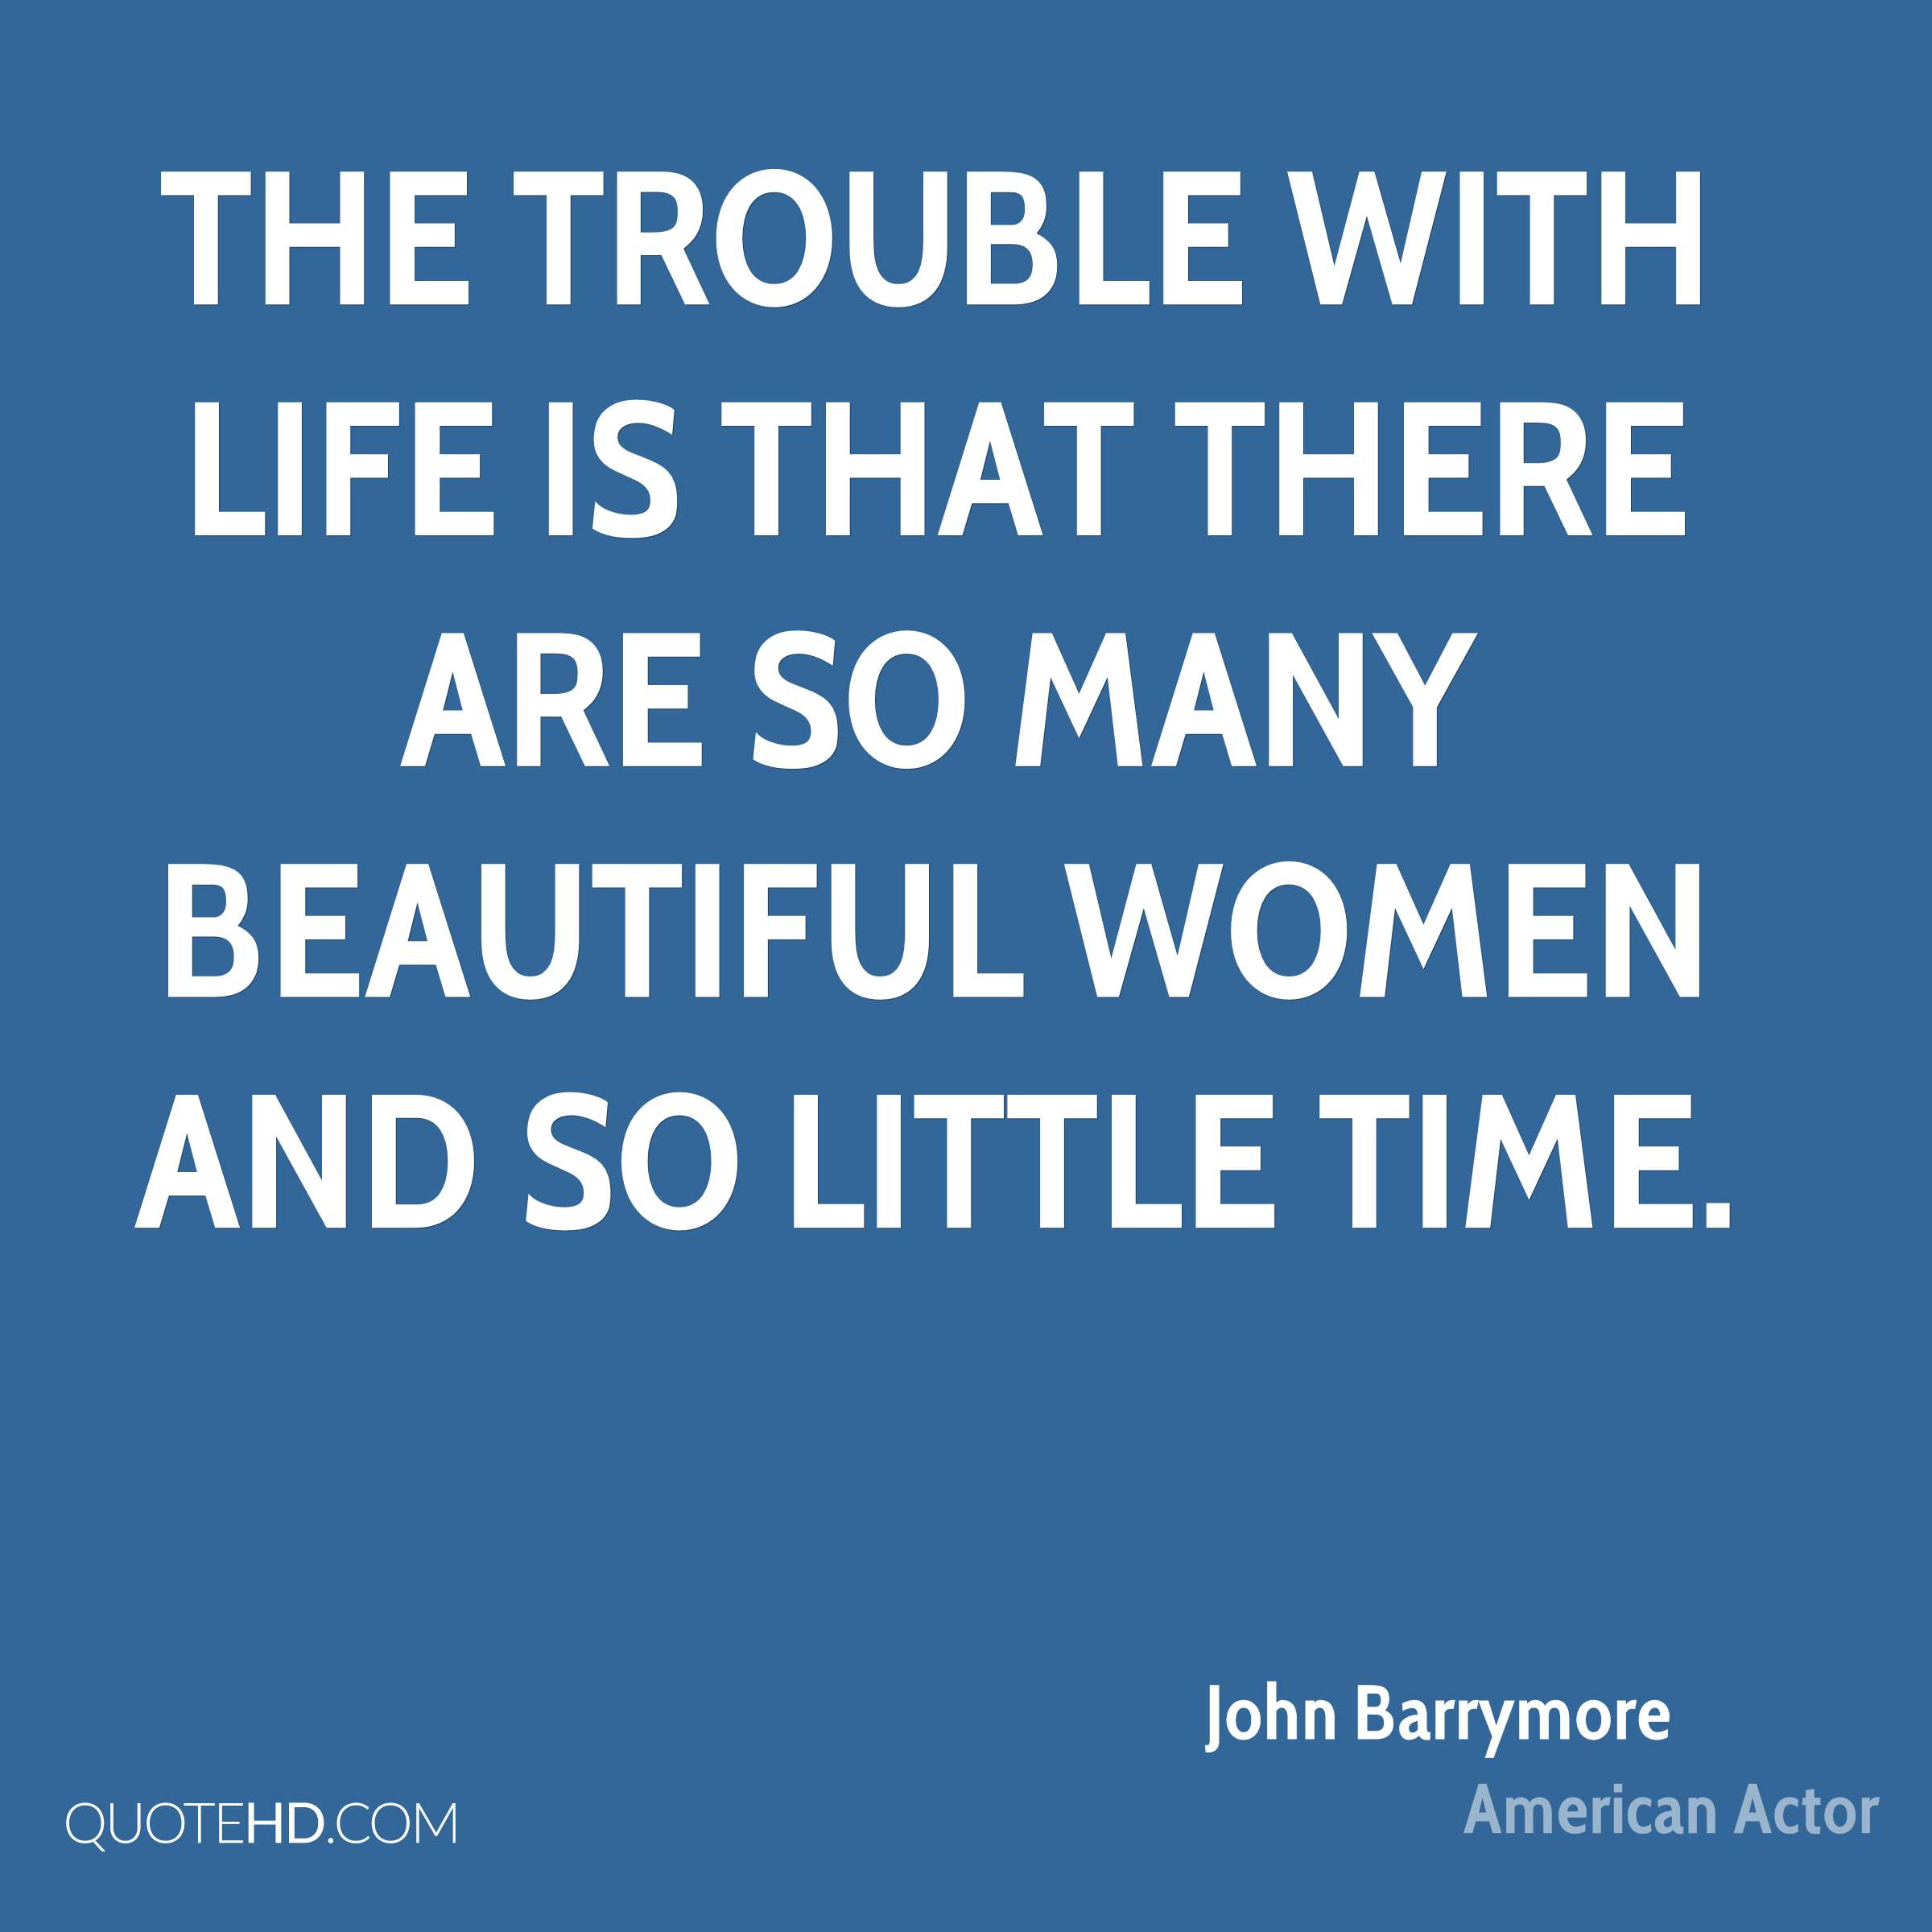 The trouble with life is that there are so many beautiful women and so little time.